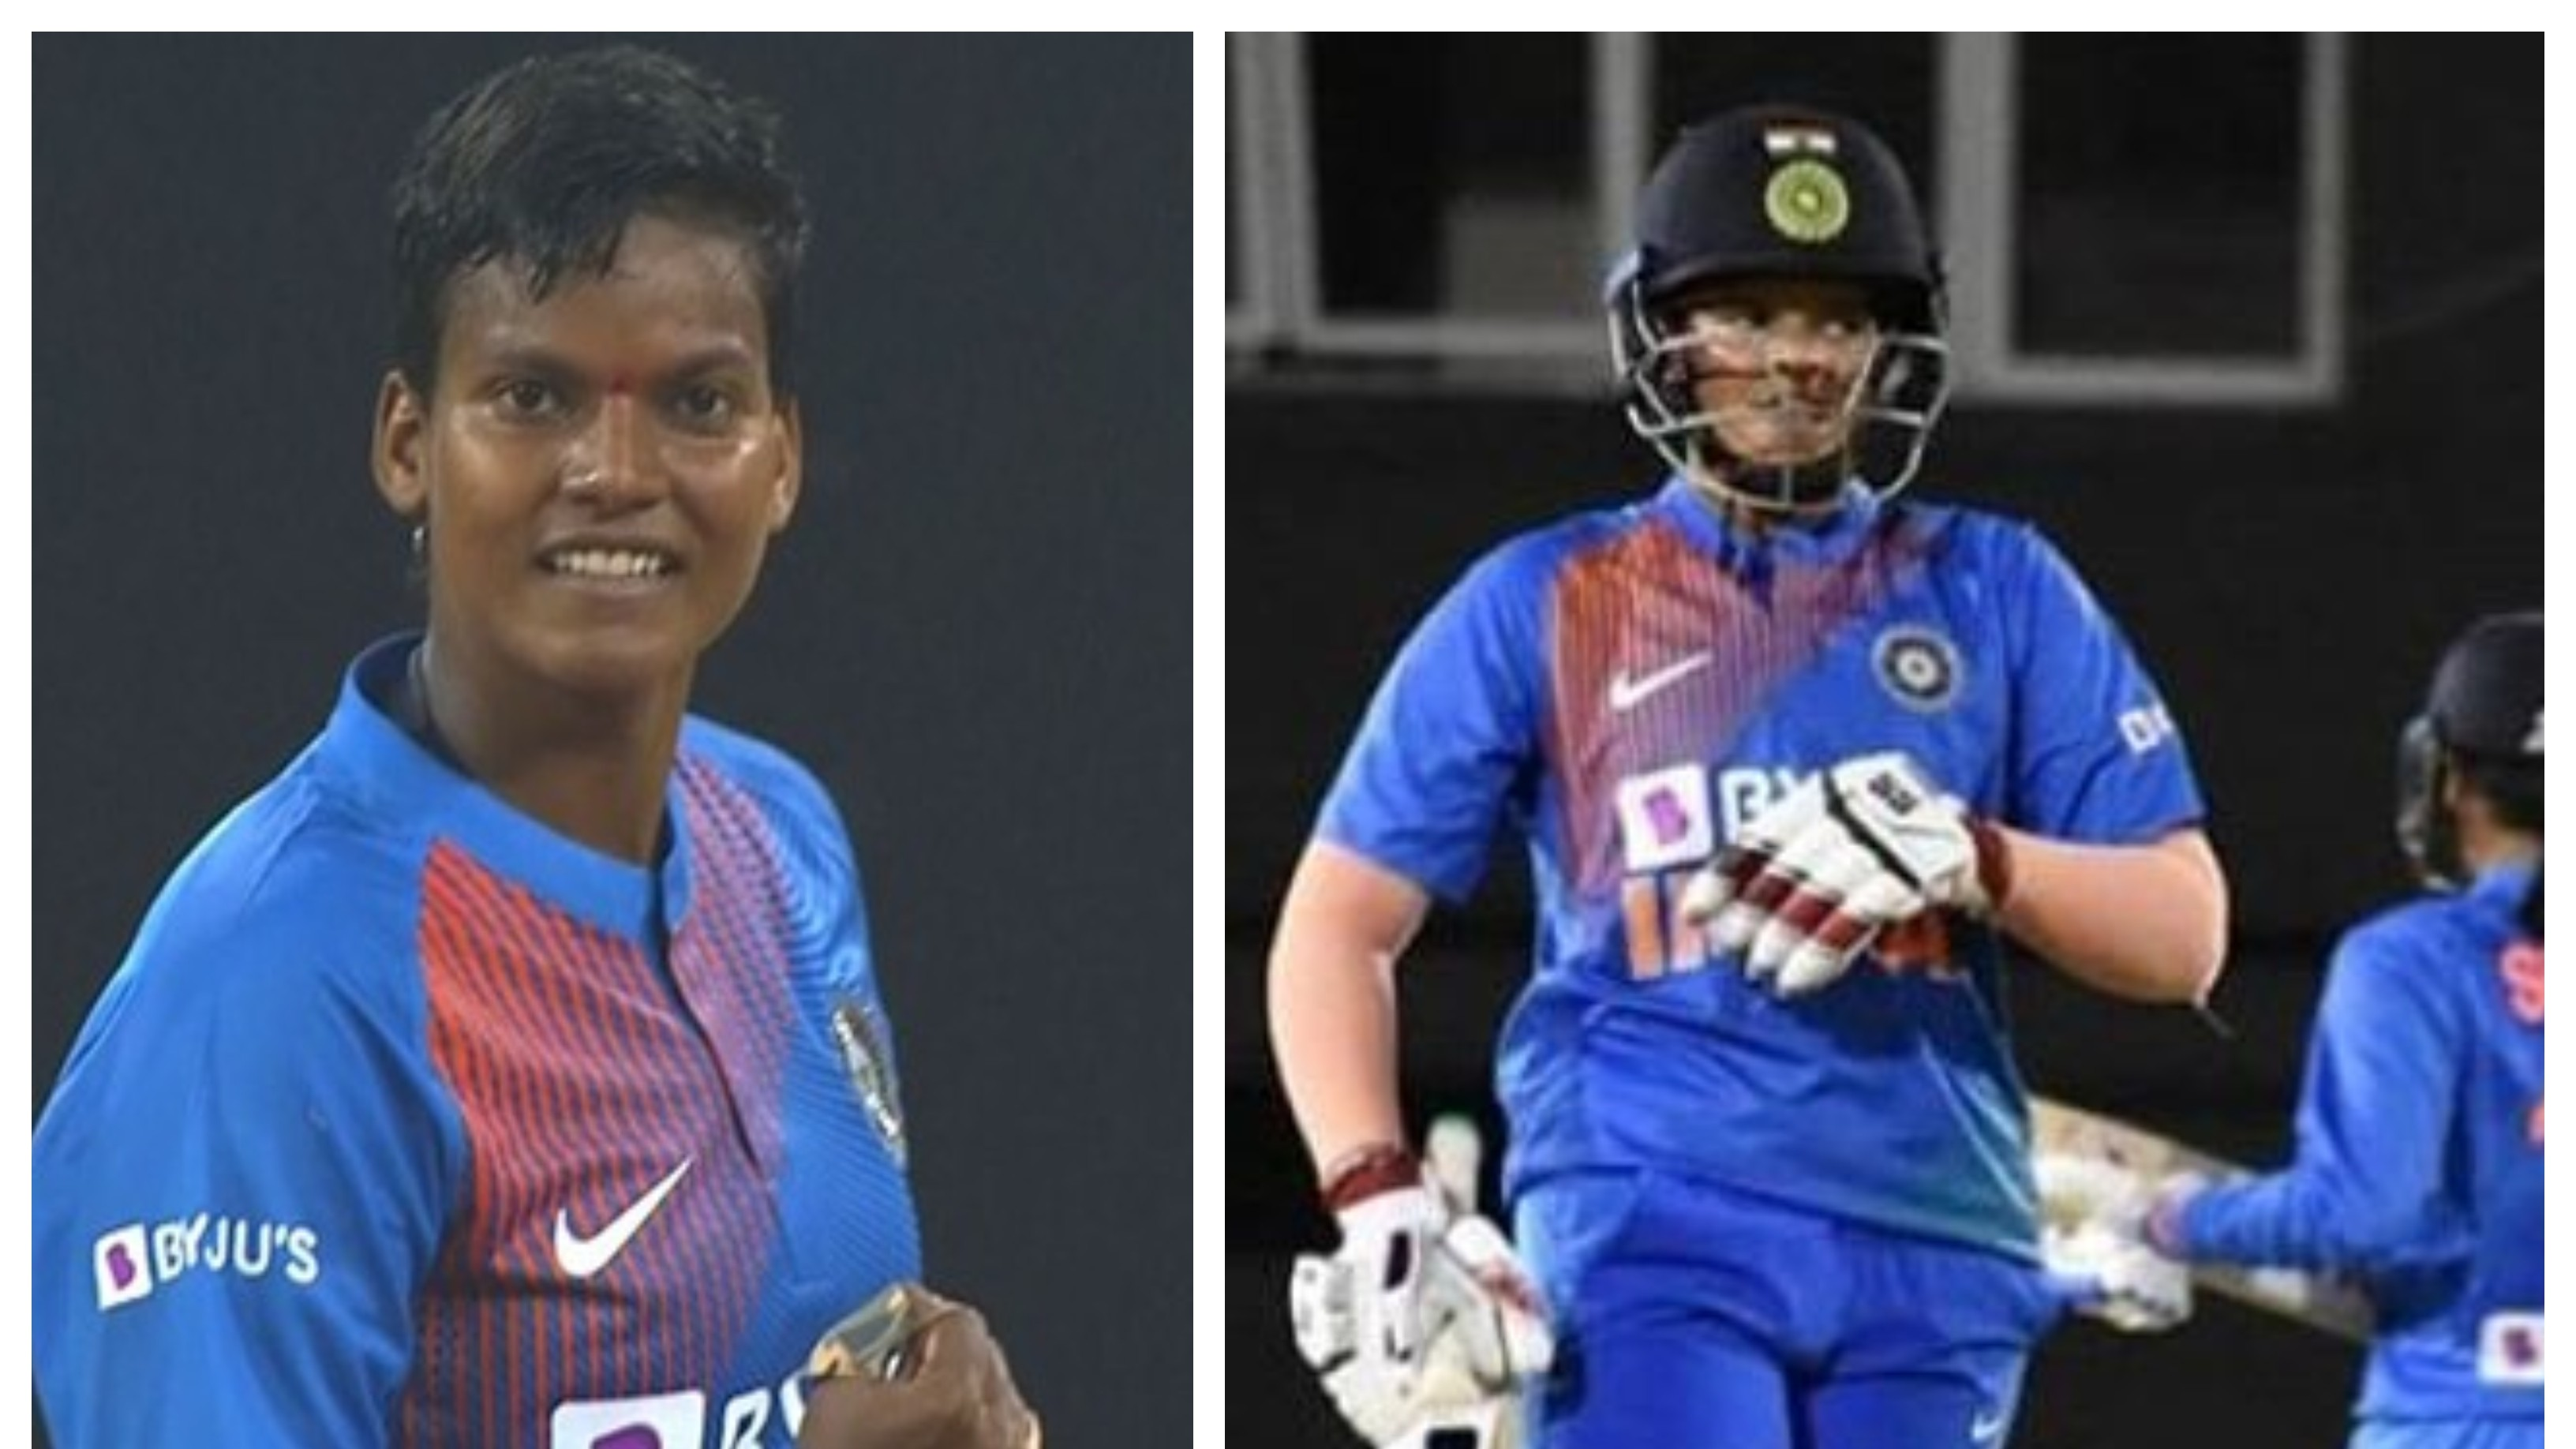 WIW v INDW 2019: India routs West Indies yet again after Deepti Sharma, Shafali Verma shine in 2nd T20I